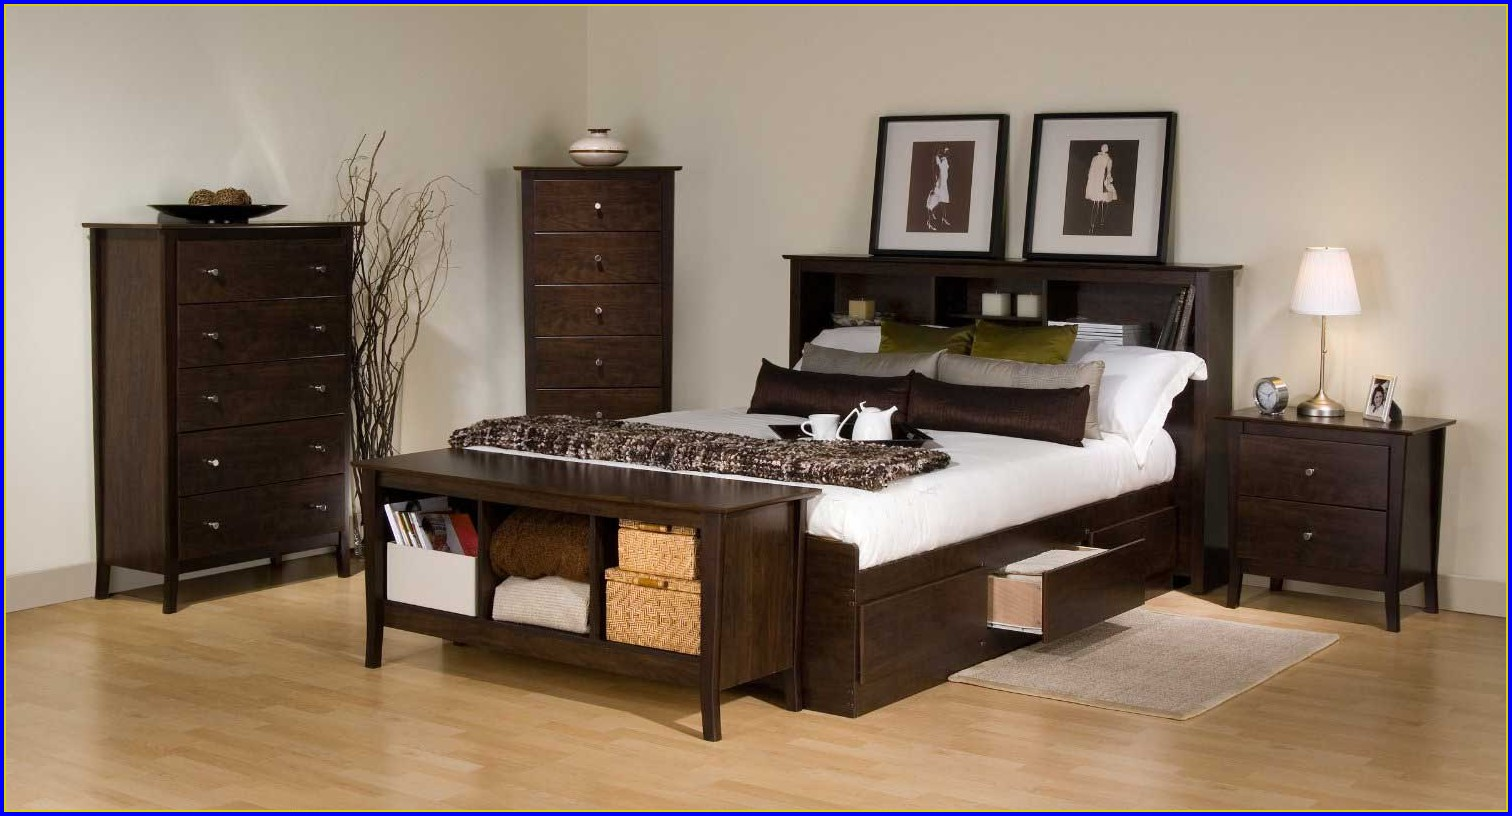 Bed Frame With Drawers Under